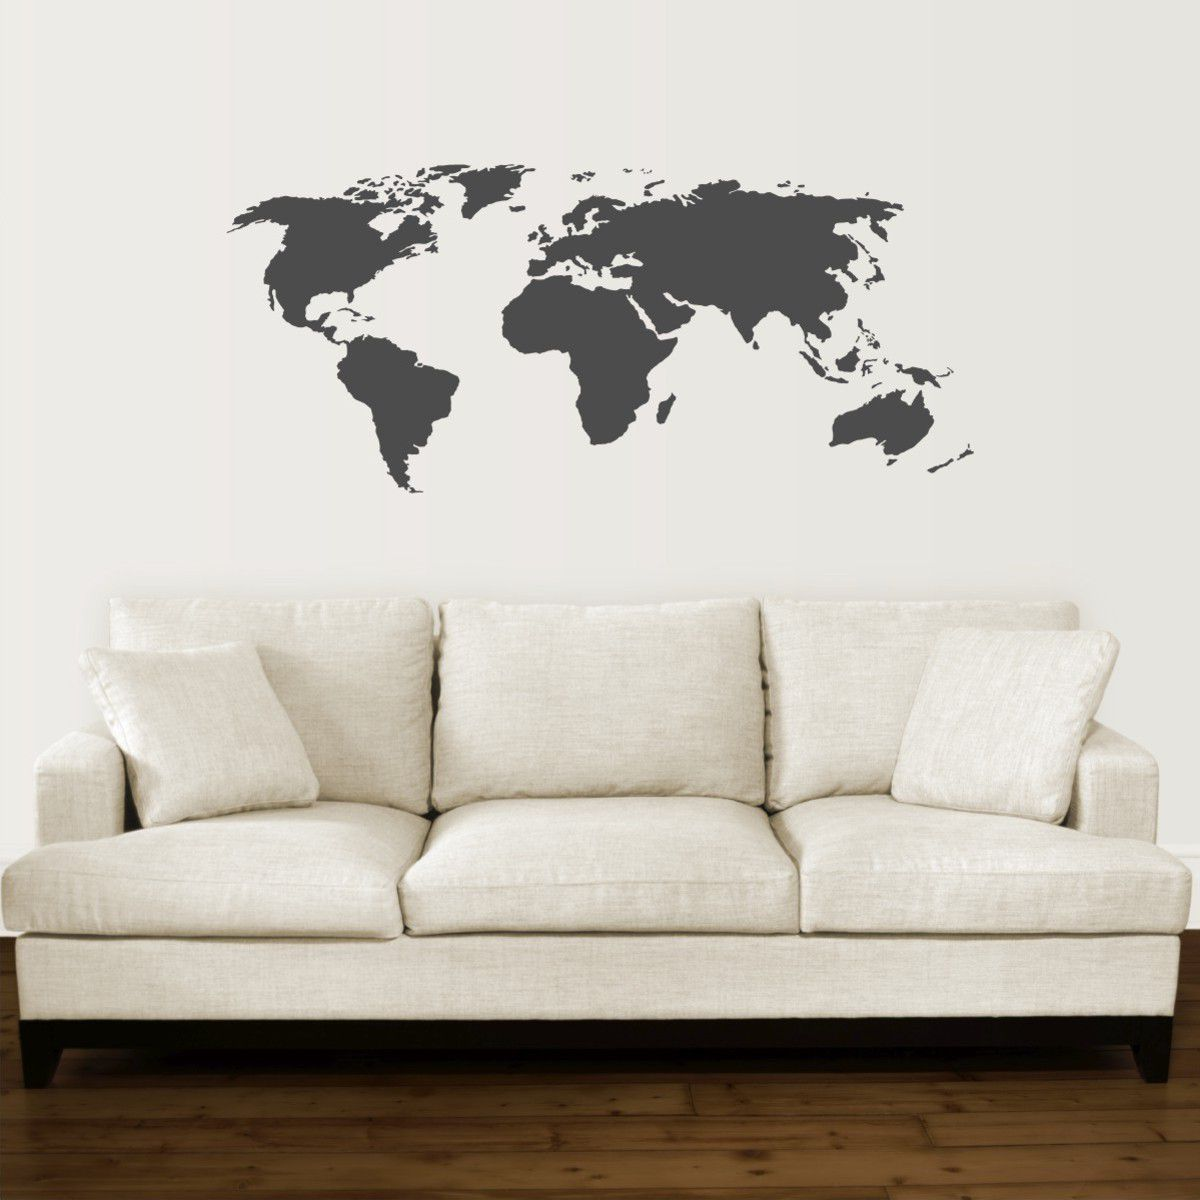 Bedight wall art bedight world map vinyl wall art buy online in bedight wall art bedight world map vinyl wall art buy online in south africa takealot gumiabroncs Images